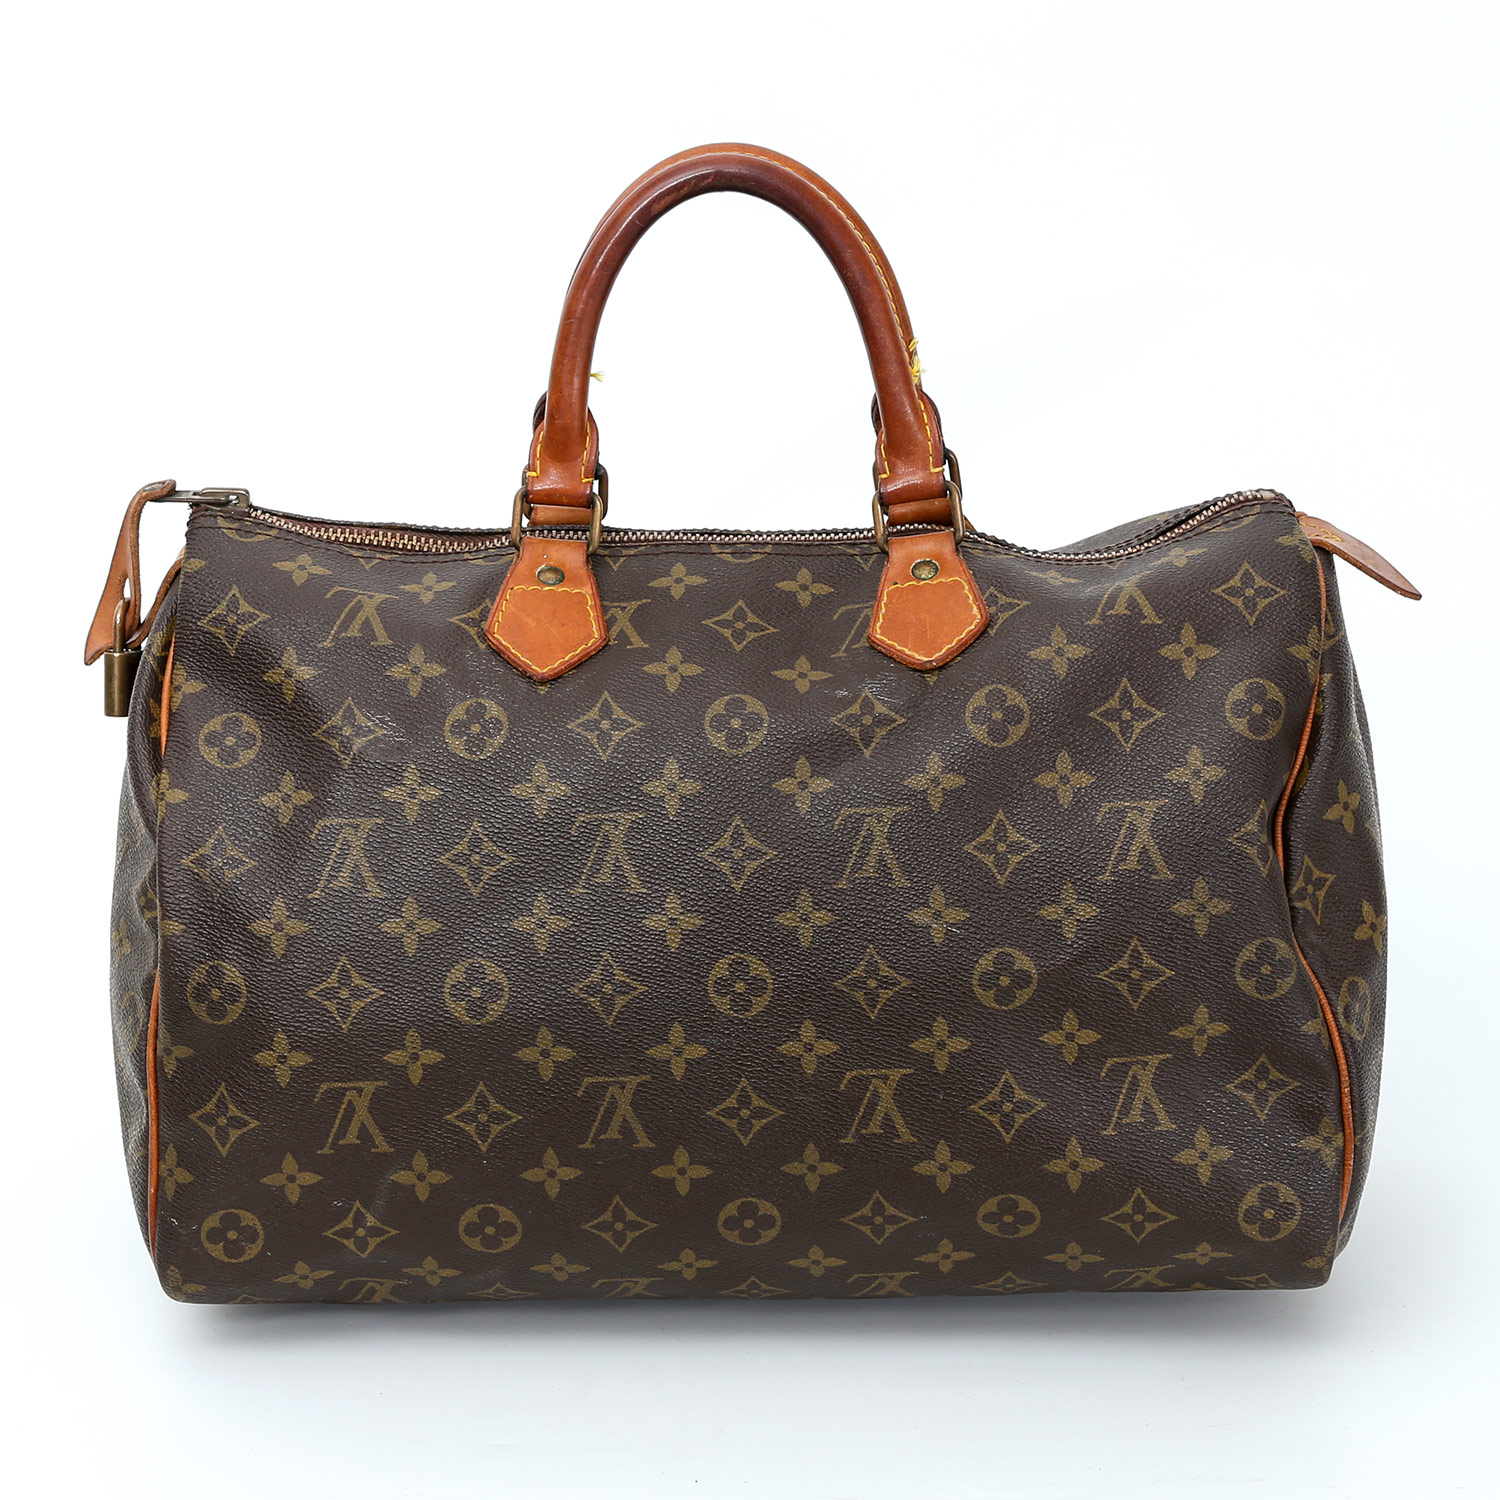 louis vuitton klassische henkeltasche speedy 35 koll 1984 monogram canvas serie. Black Bedroom Furniture Sets. Home Design Ideas